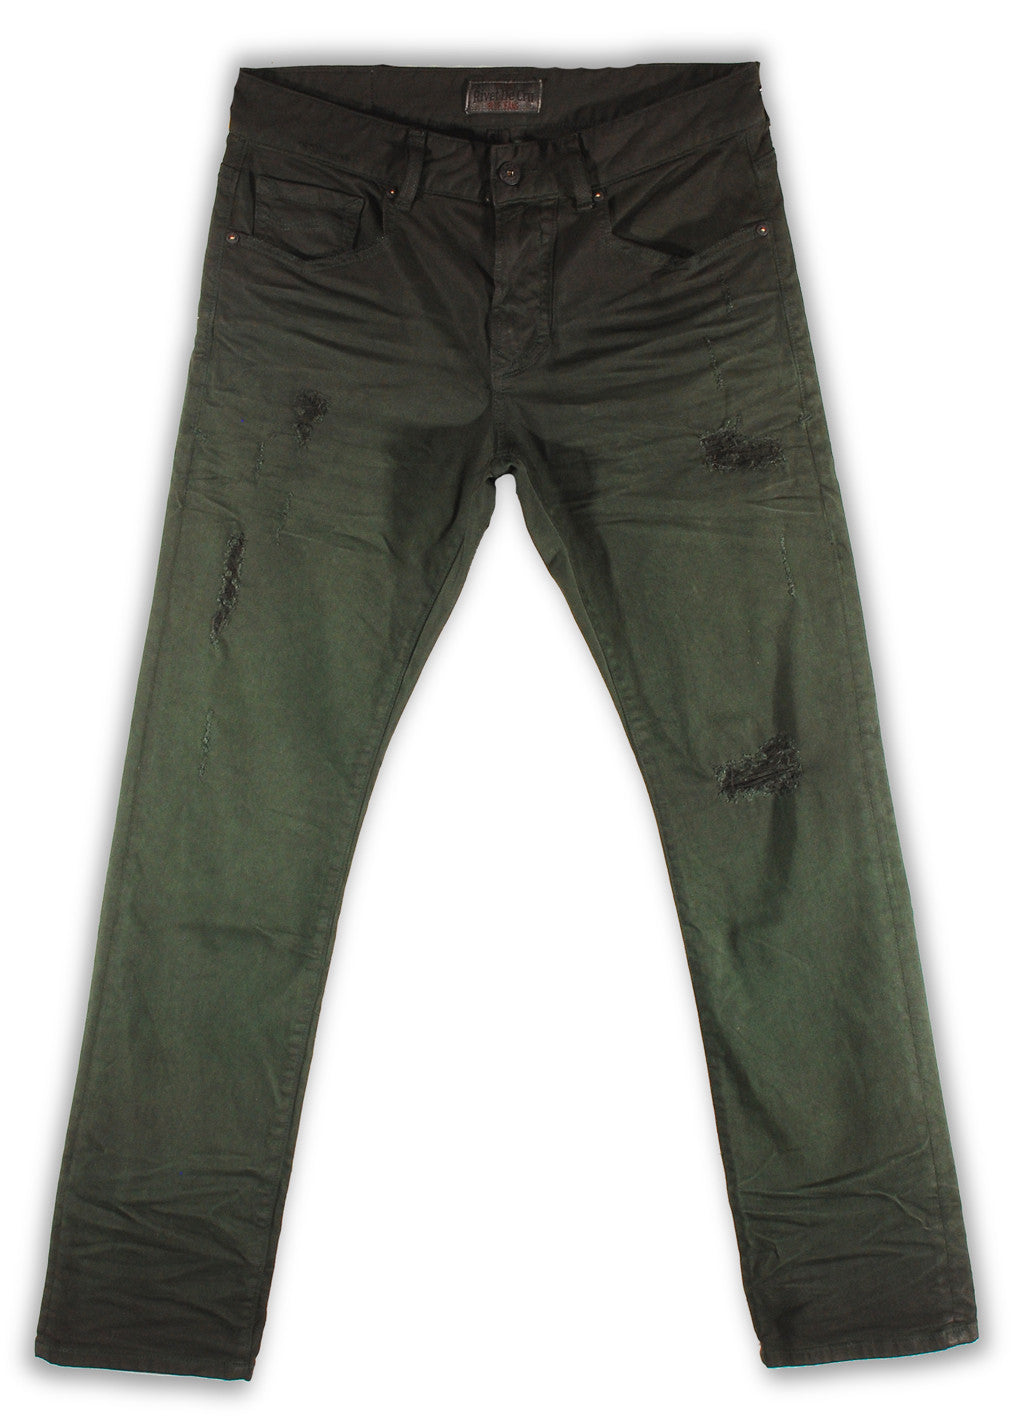 150-139M Peridot Green Jean - Rivet De Cru Jeans - Premium Denim - Mens Fashion - Mens Clothing - Mens Jeans - Mens Denim - 1